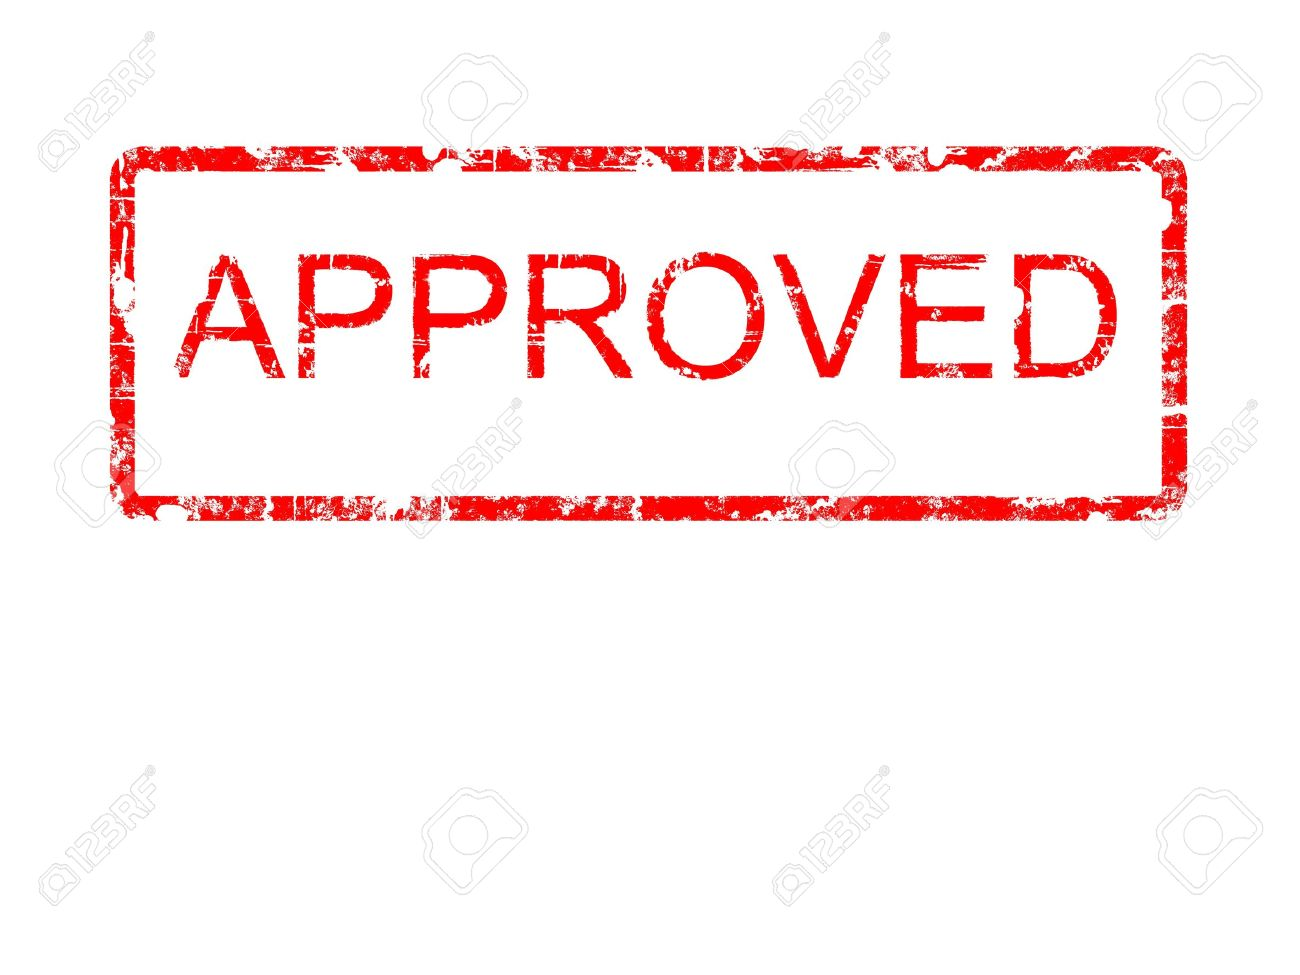 Red grunge style rubber stamp design with the word APPROVED within a border with rounded corners, on a plain white background Stock Photo - 4888622